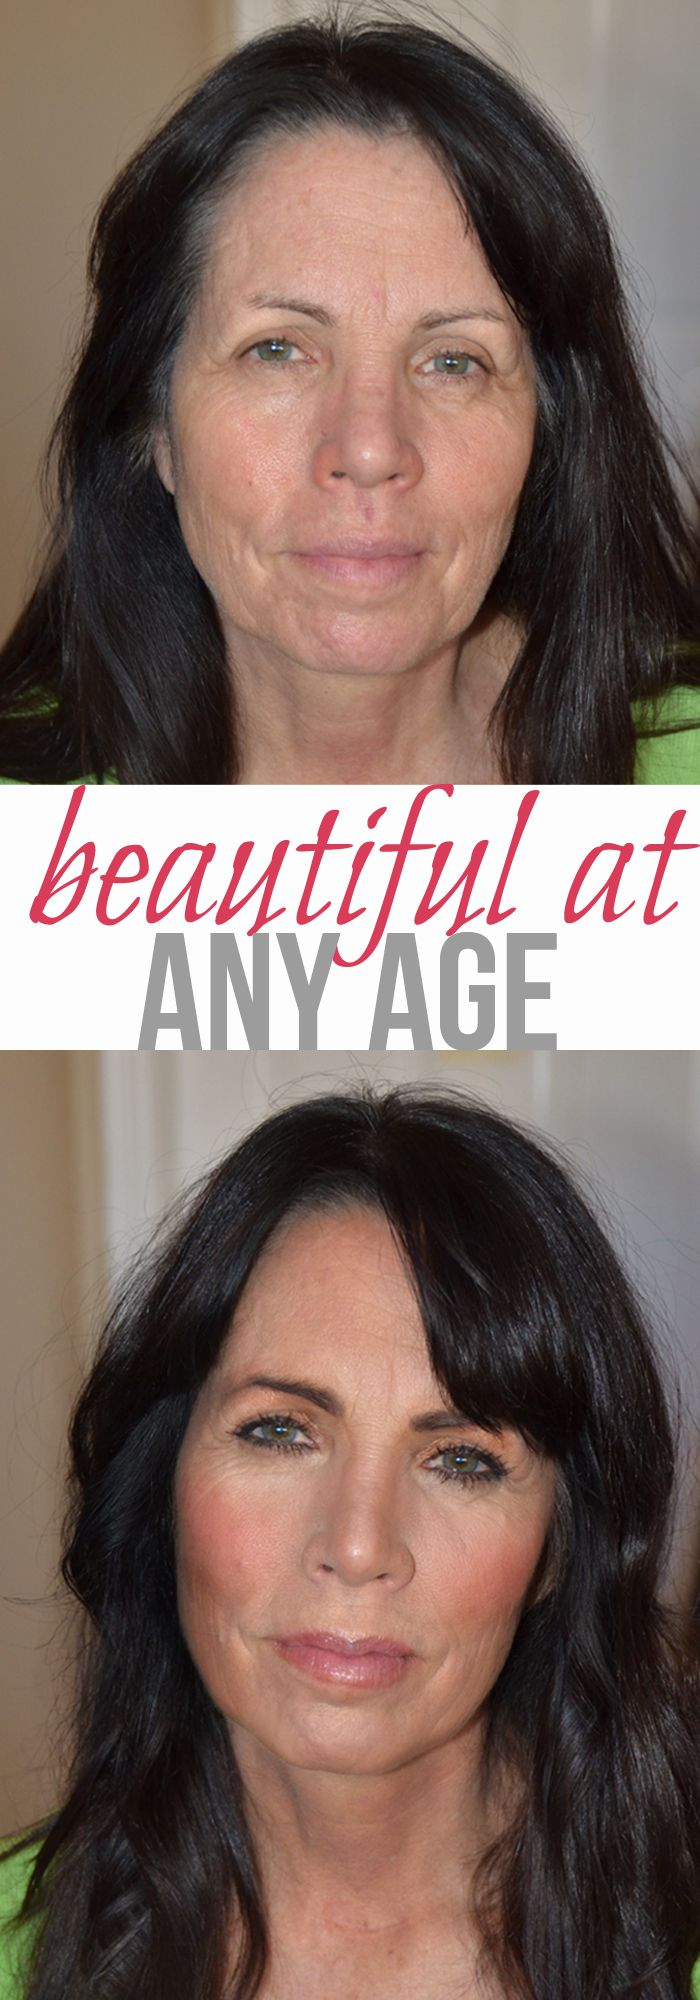 A MAKEUP ARTIST'S MUM BEFORE & AFTER WAIT UNTIL U SEE AFTER NOT OVERDONE! BEAUTIFUL. Some incredible tips for ageless beauty!